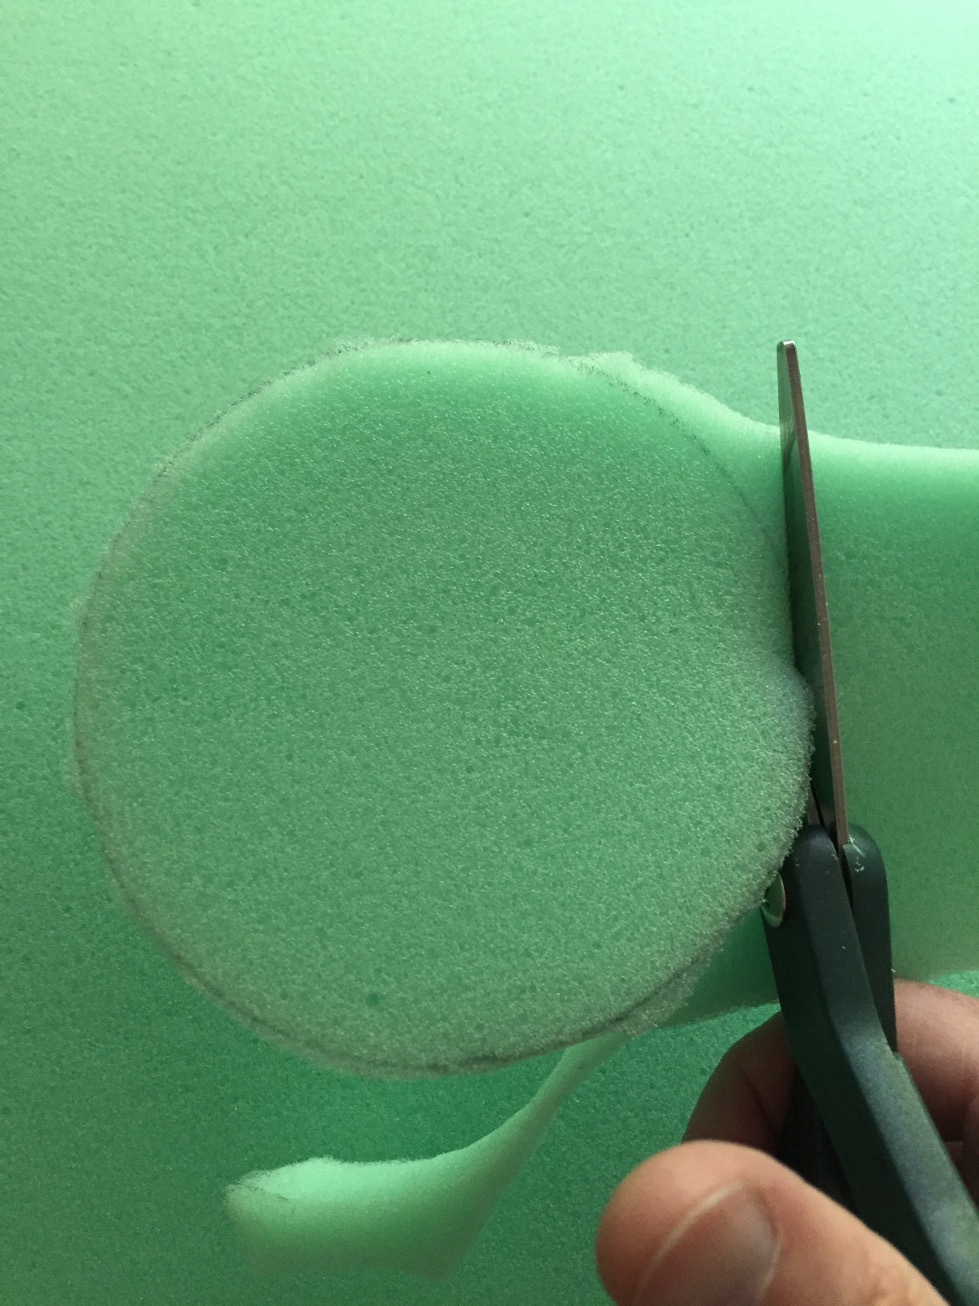 Cutting foam out with scissors